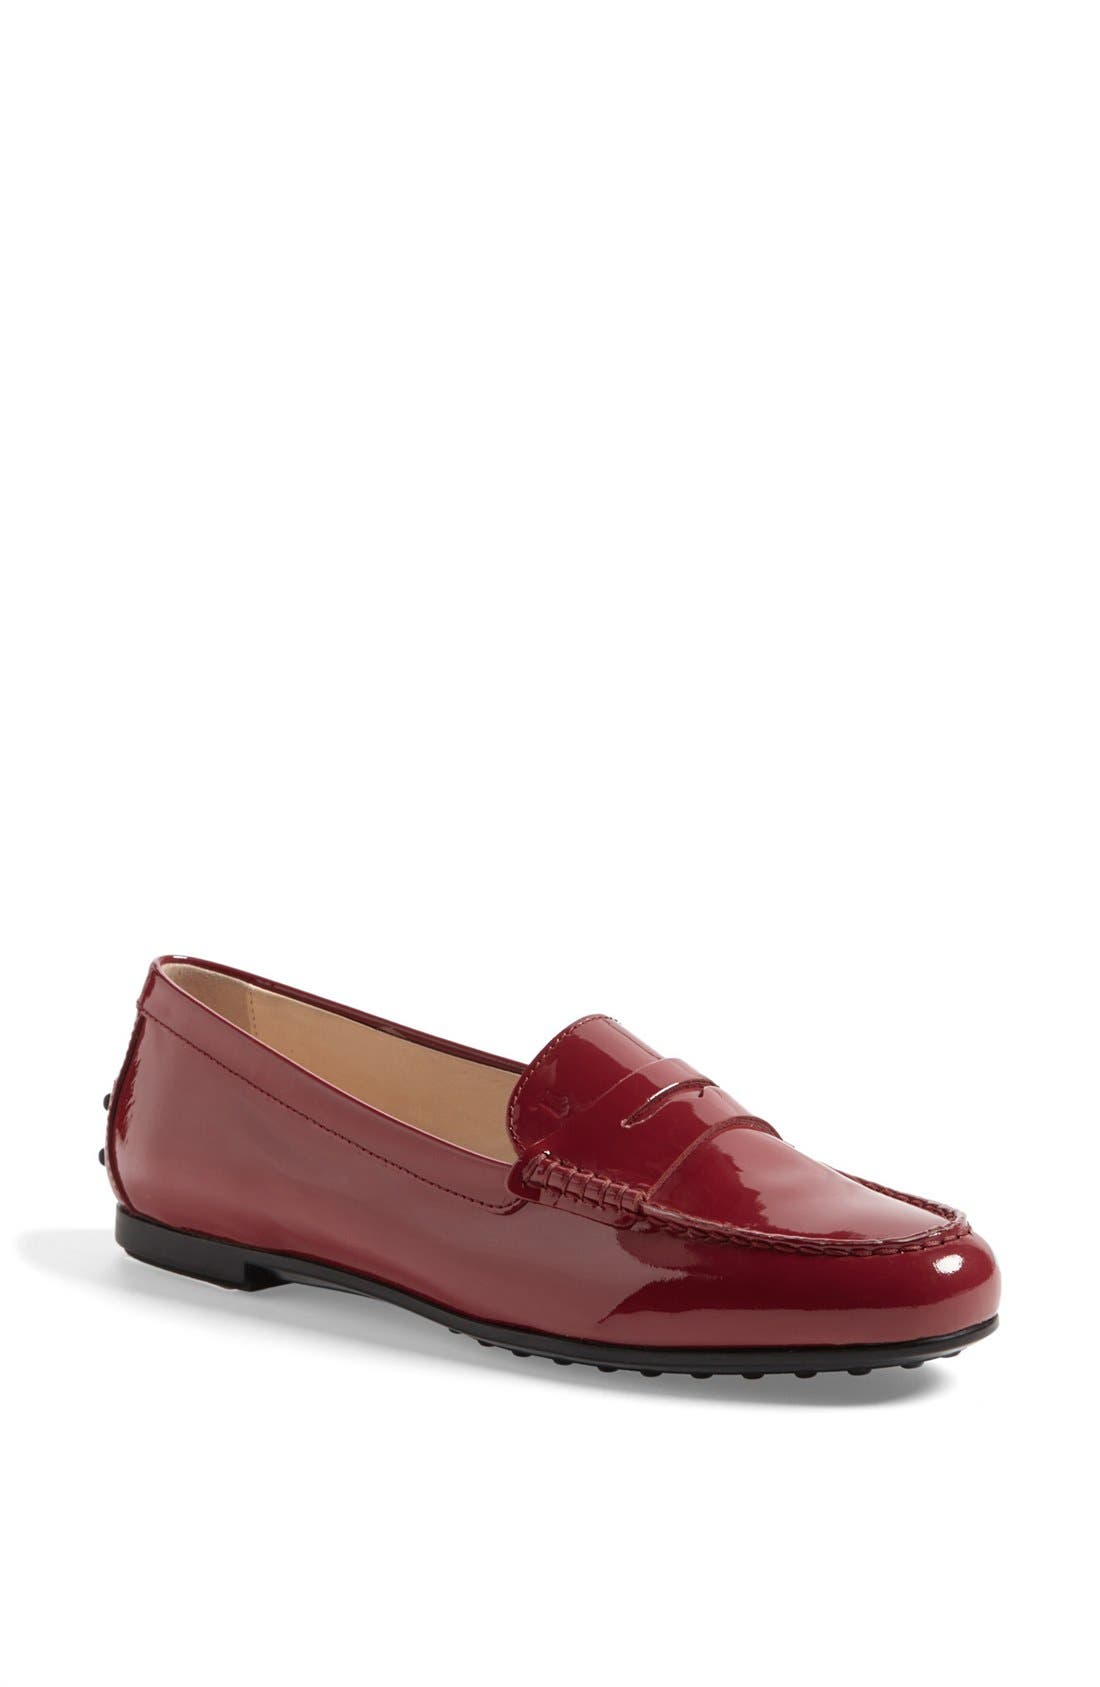 Main Image - Tod's 'Gomma' Patent Leather Driving Moccasin